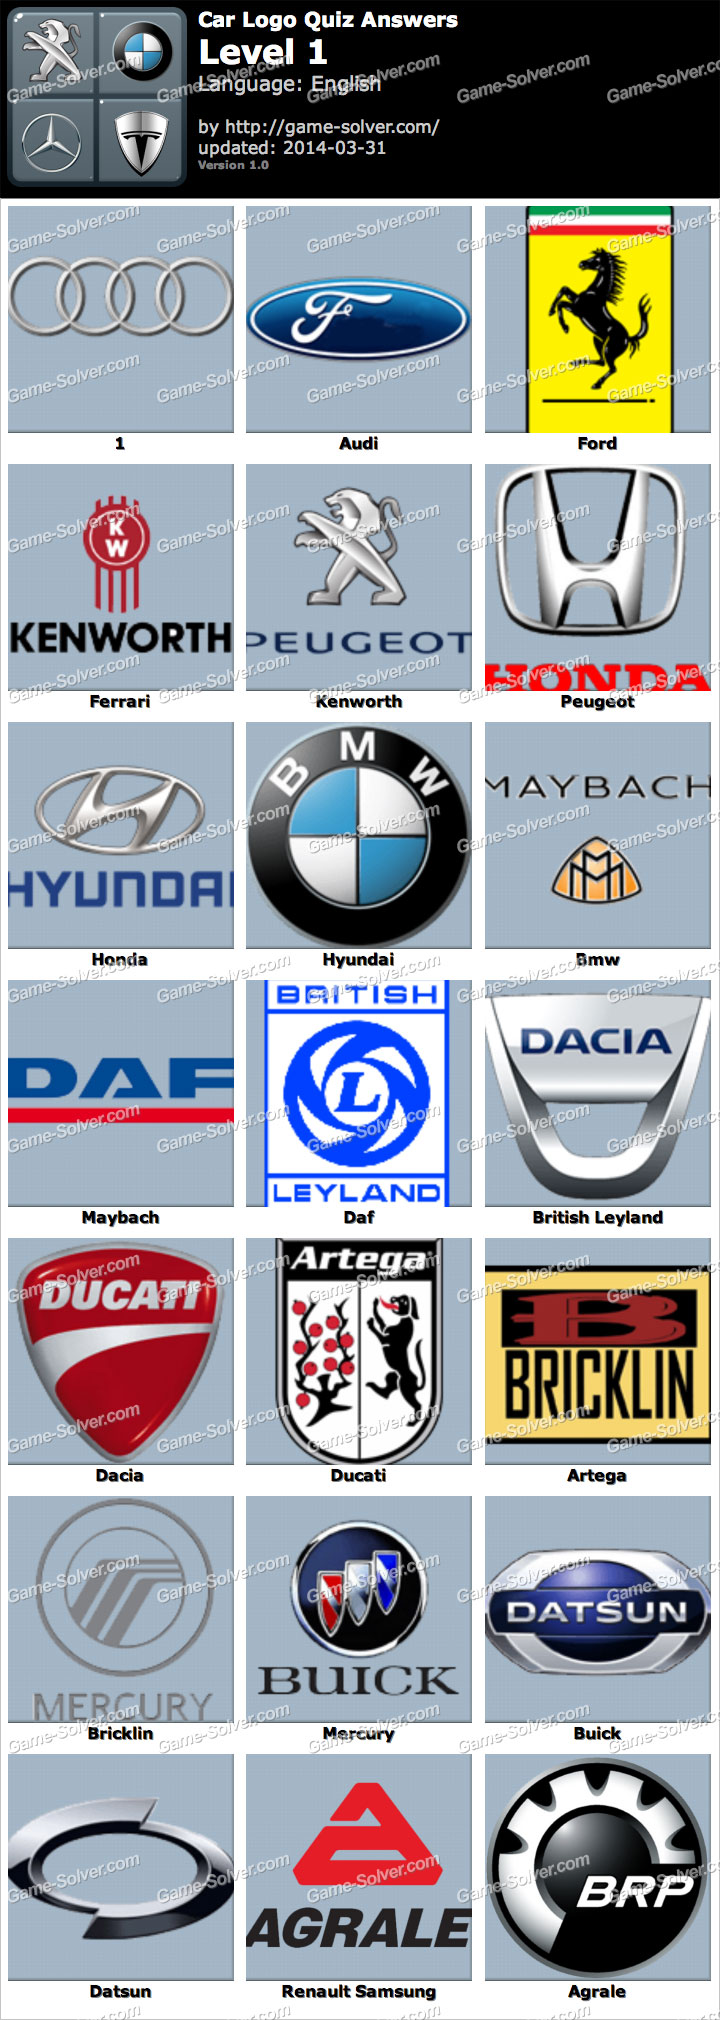 Car Logo Quiz Answers Game Solver